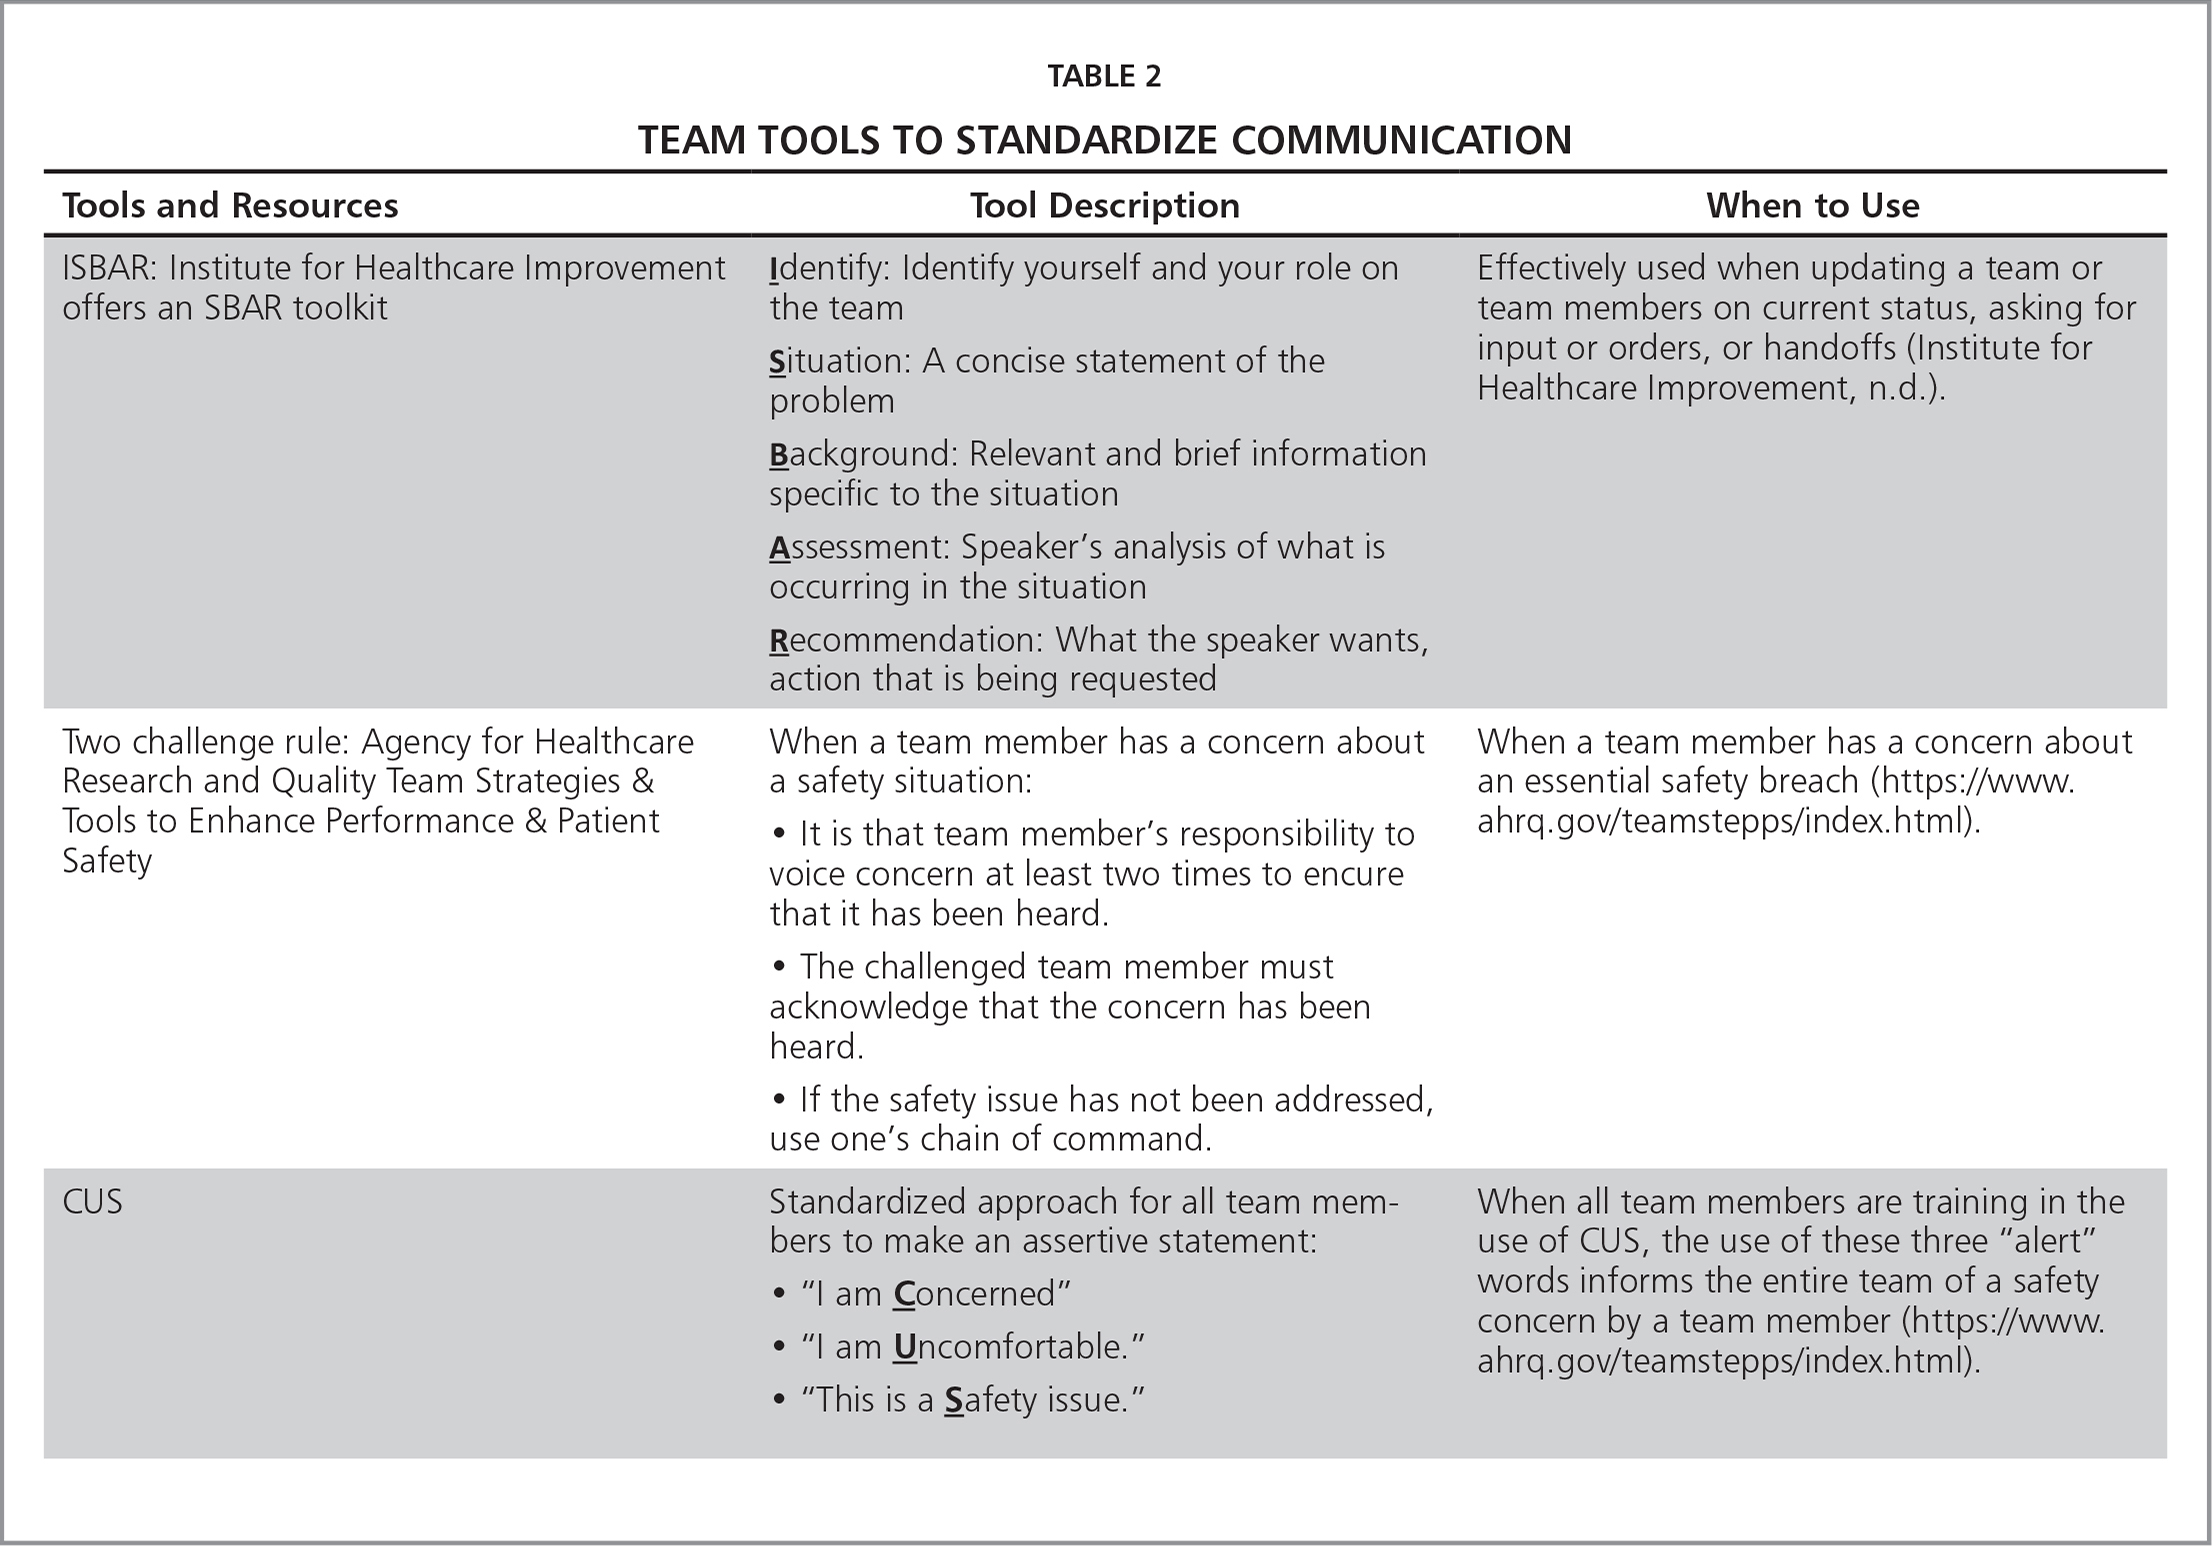 Team Tools to Standardize Communication